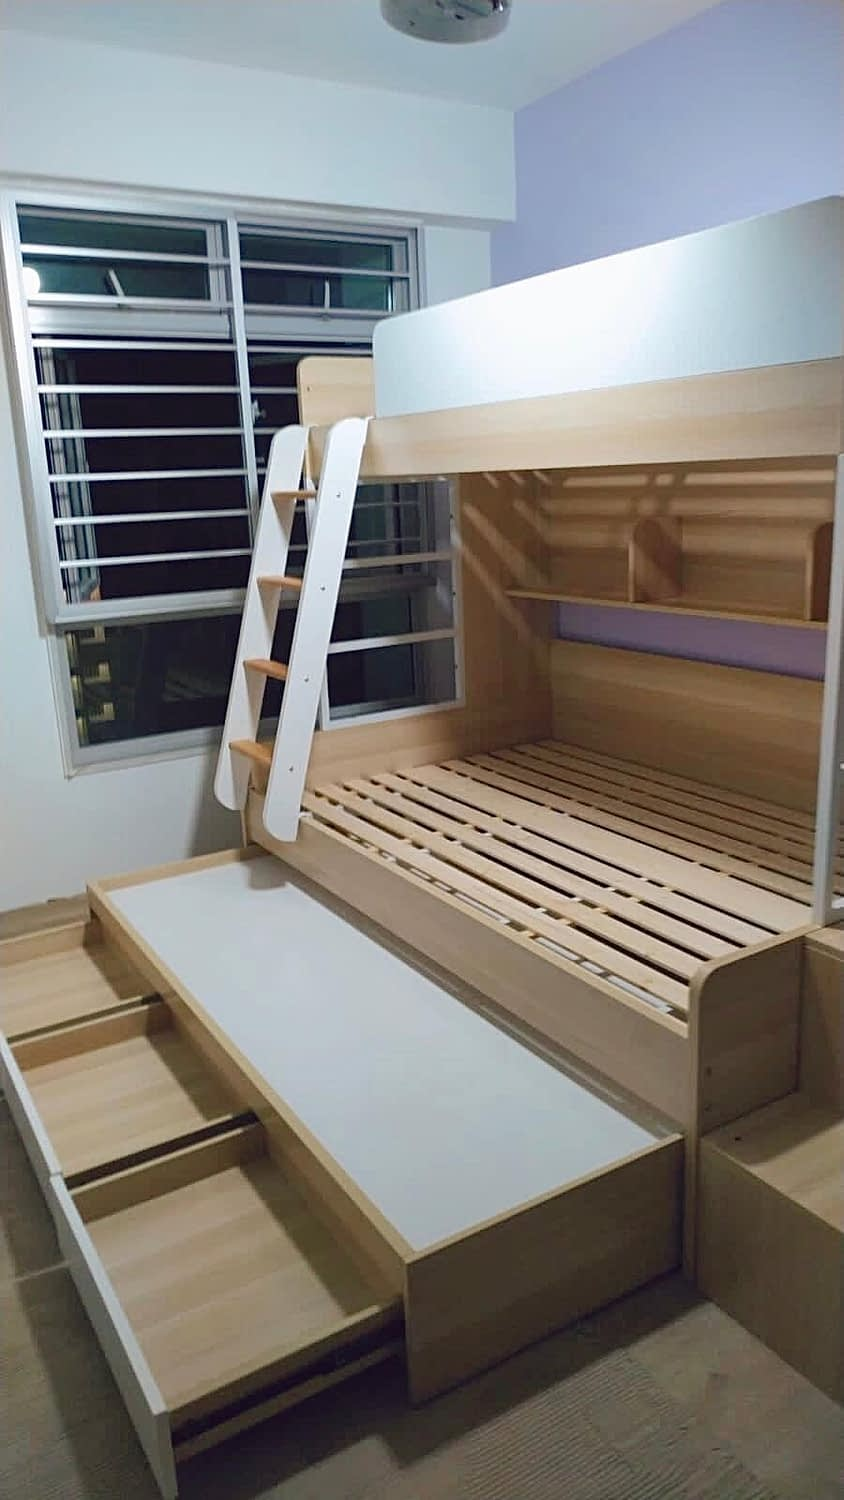 Assemble Bunk Bed